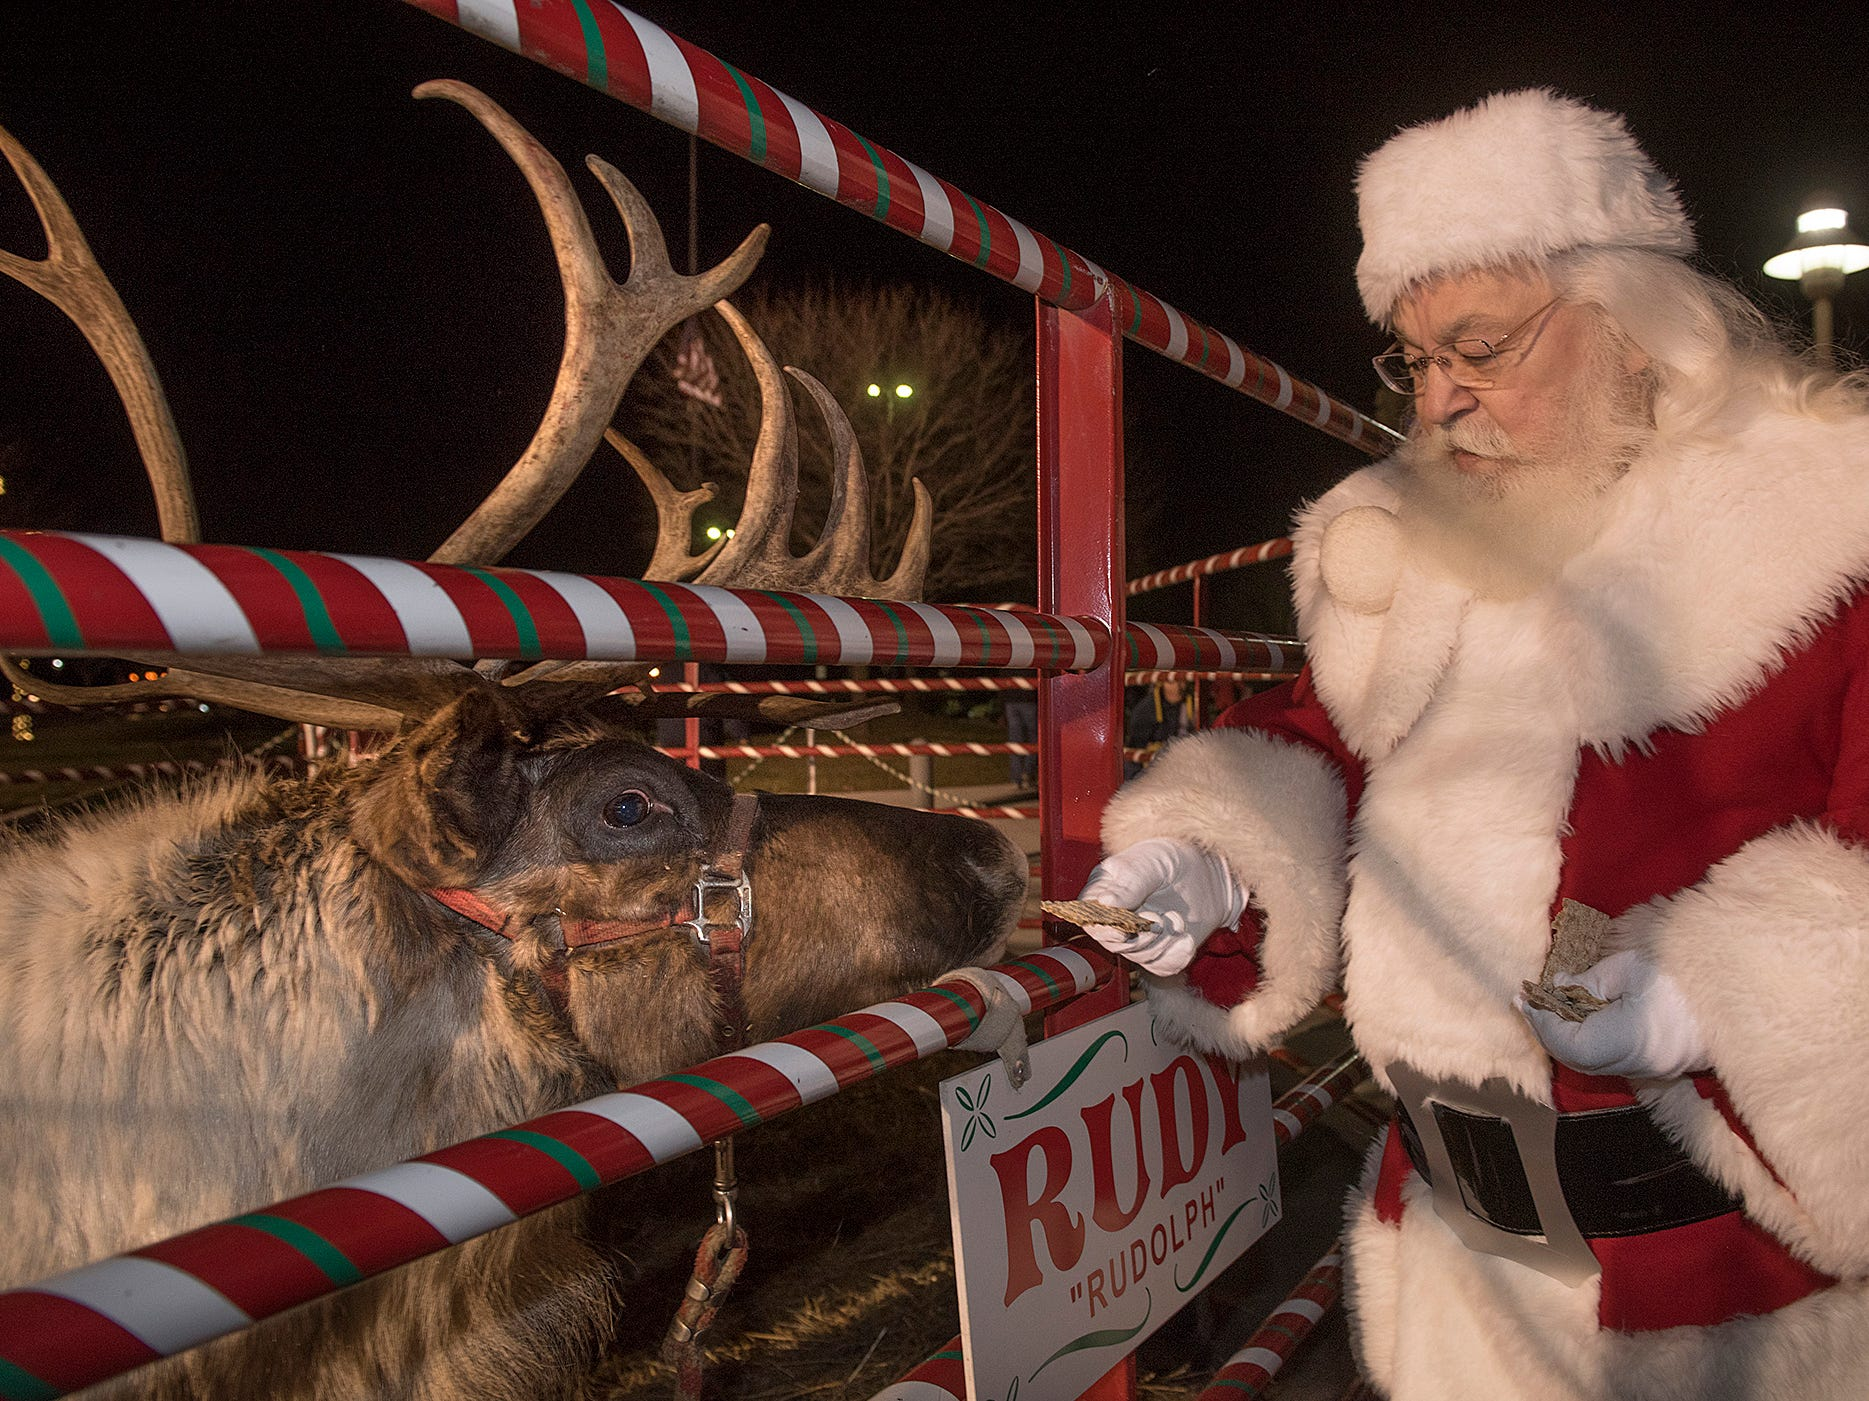 Santa takes a break to feed Rudolph.